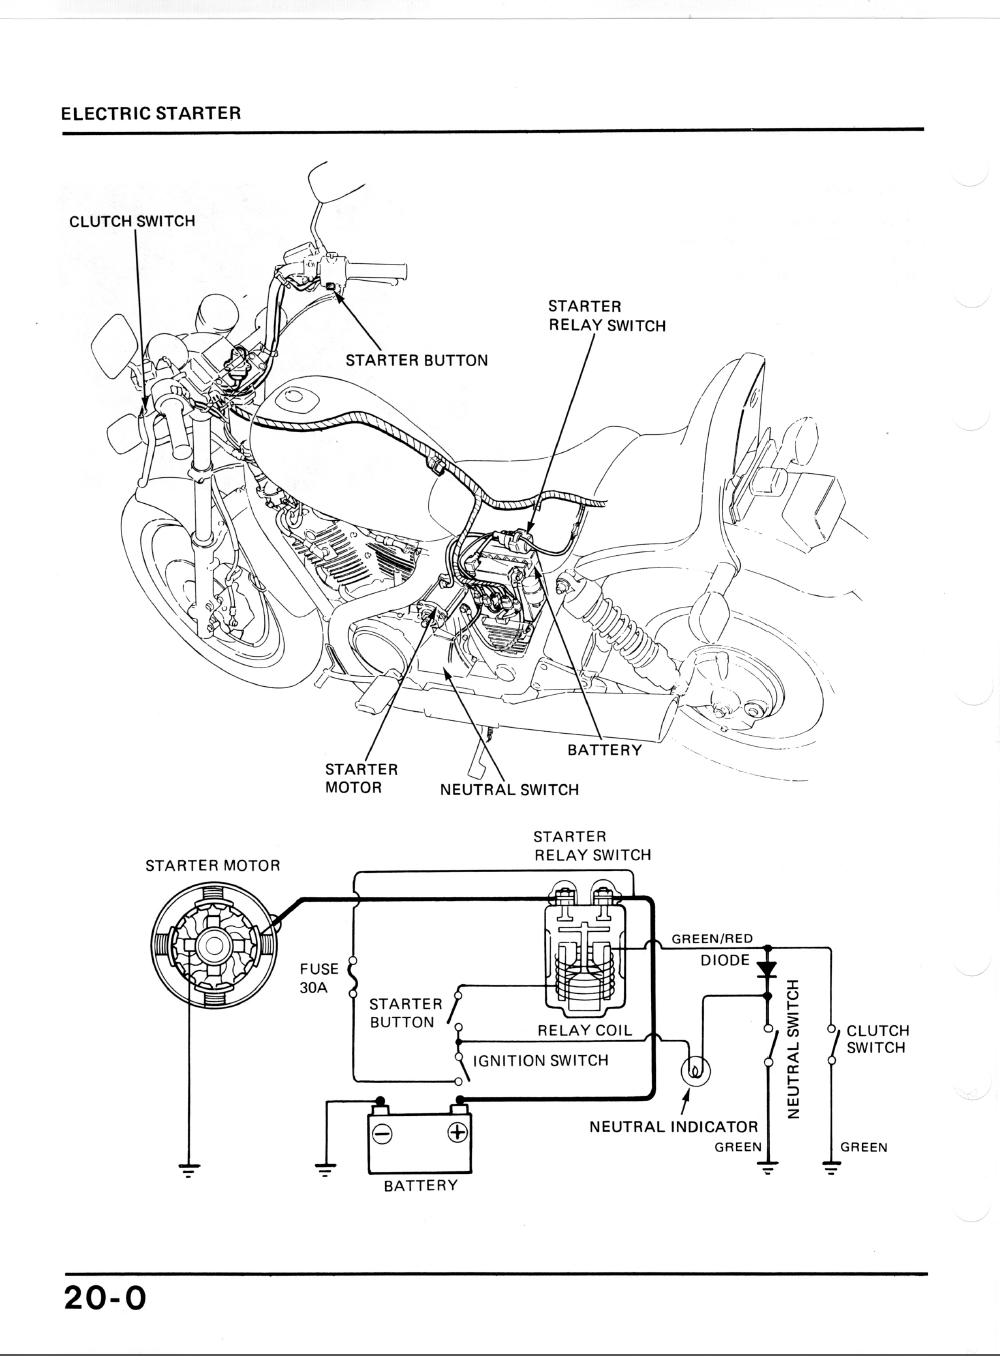 1984 honda shadow 700 wiring diagram